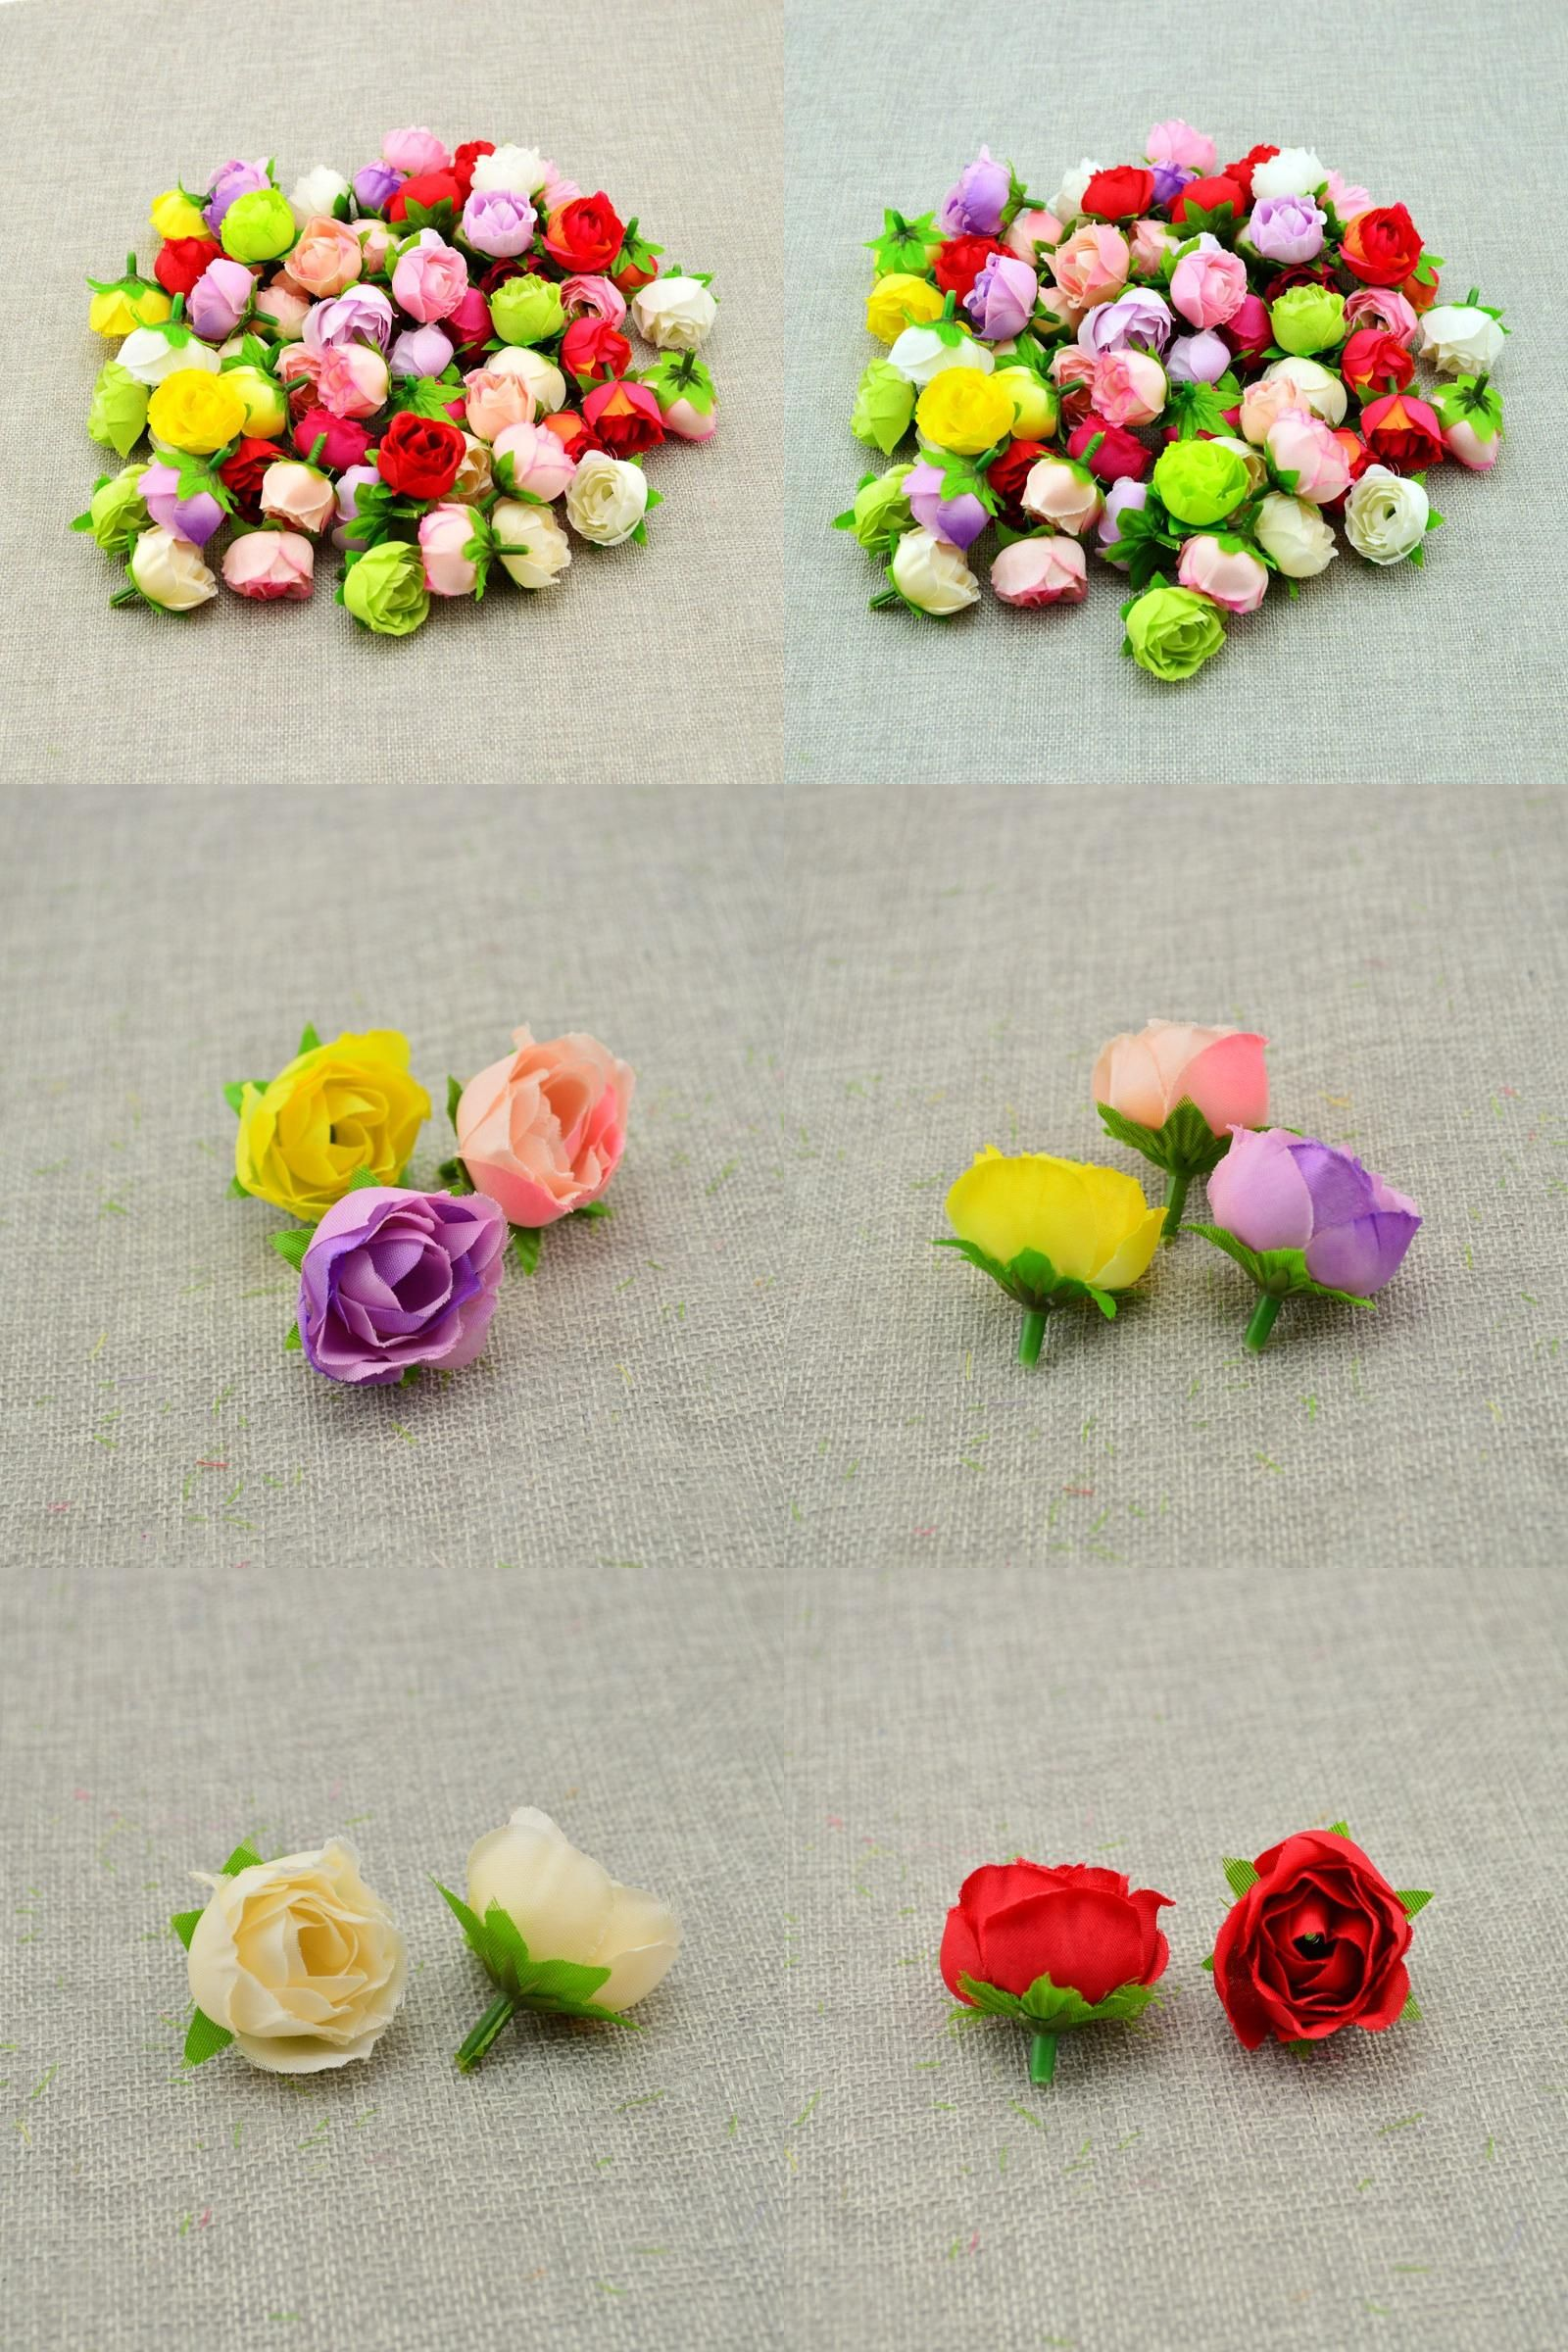 Visit To Buy 30pcs Cheap Artificial Flowers Diy Home Decoration